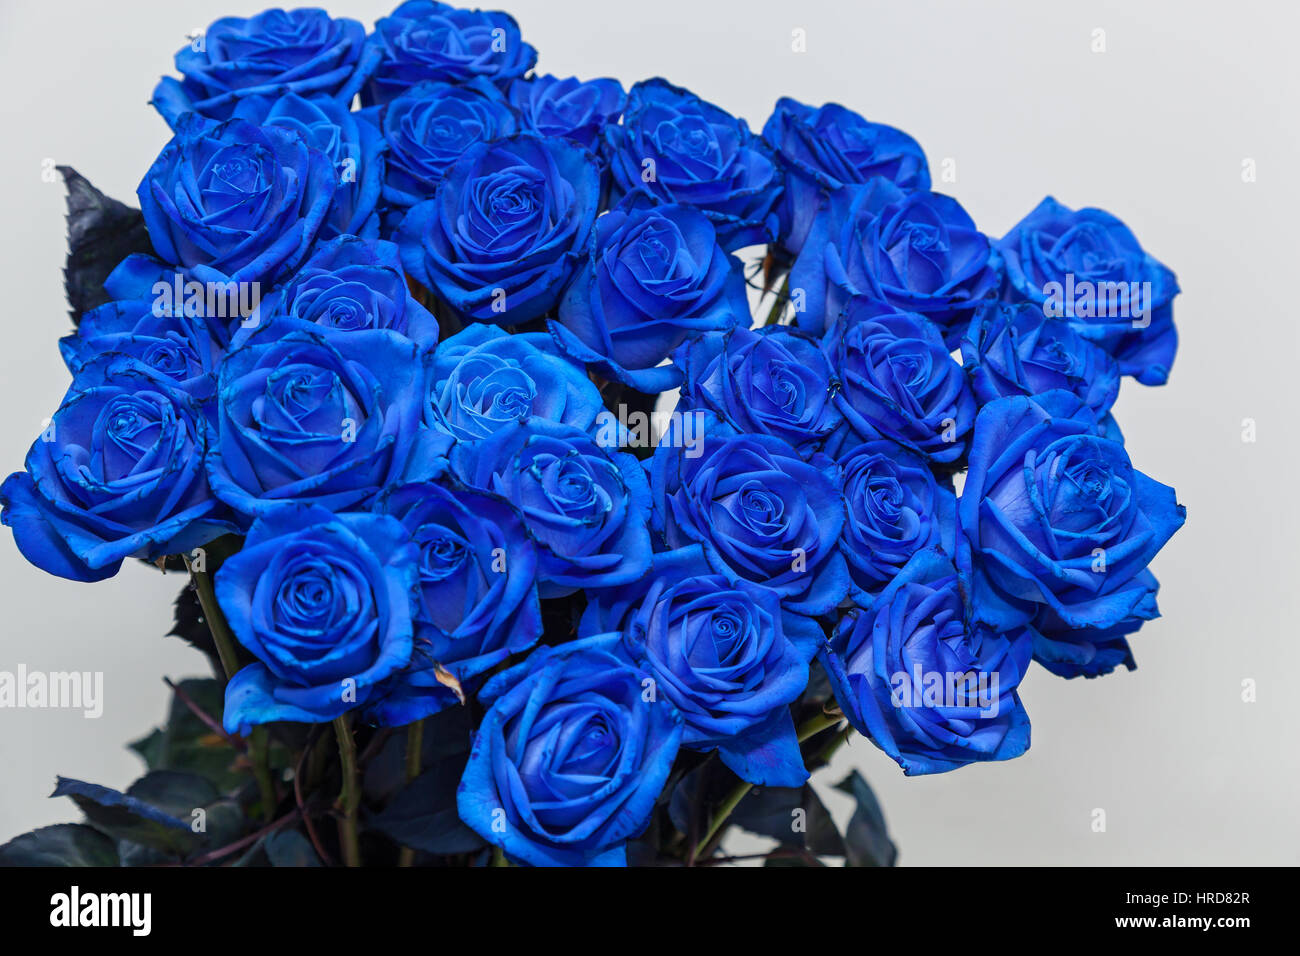 Blue roses bouquet beautiful roses for valentines day gift mothers blue roses bouquet beautiful roses for valentines day gift mothers day birthday present izmirmasajfo